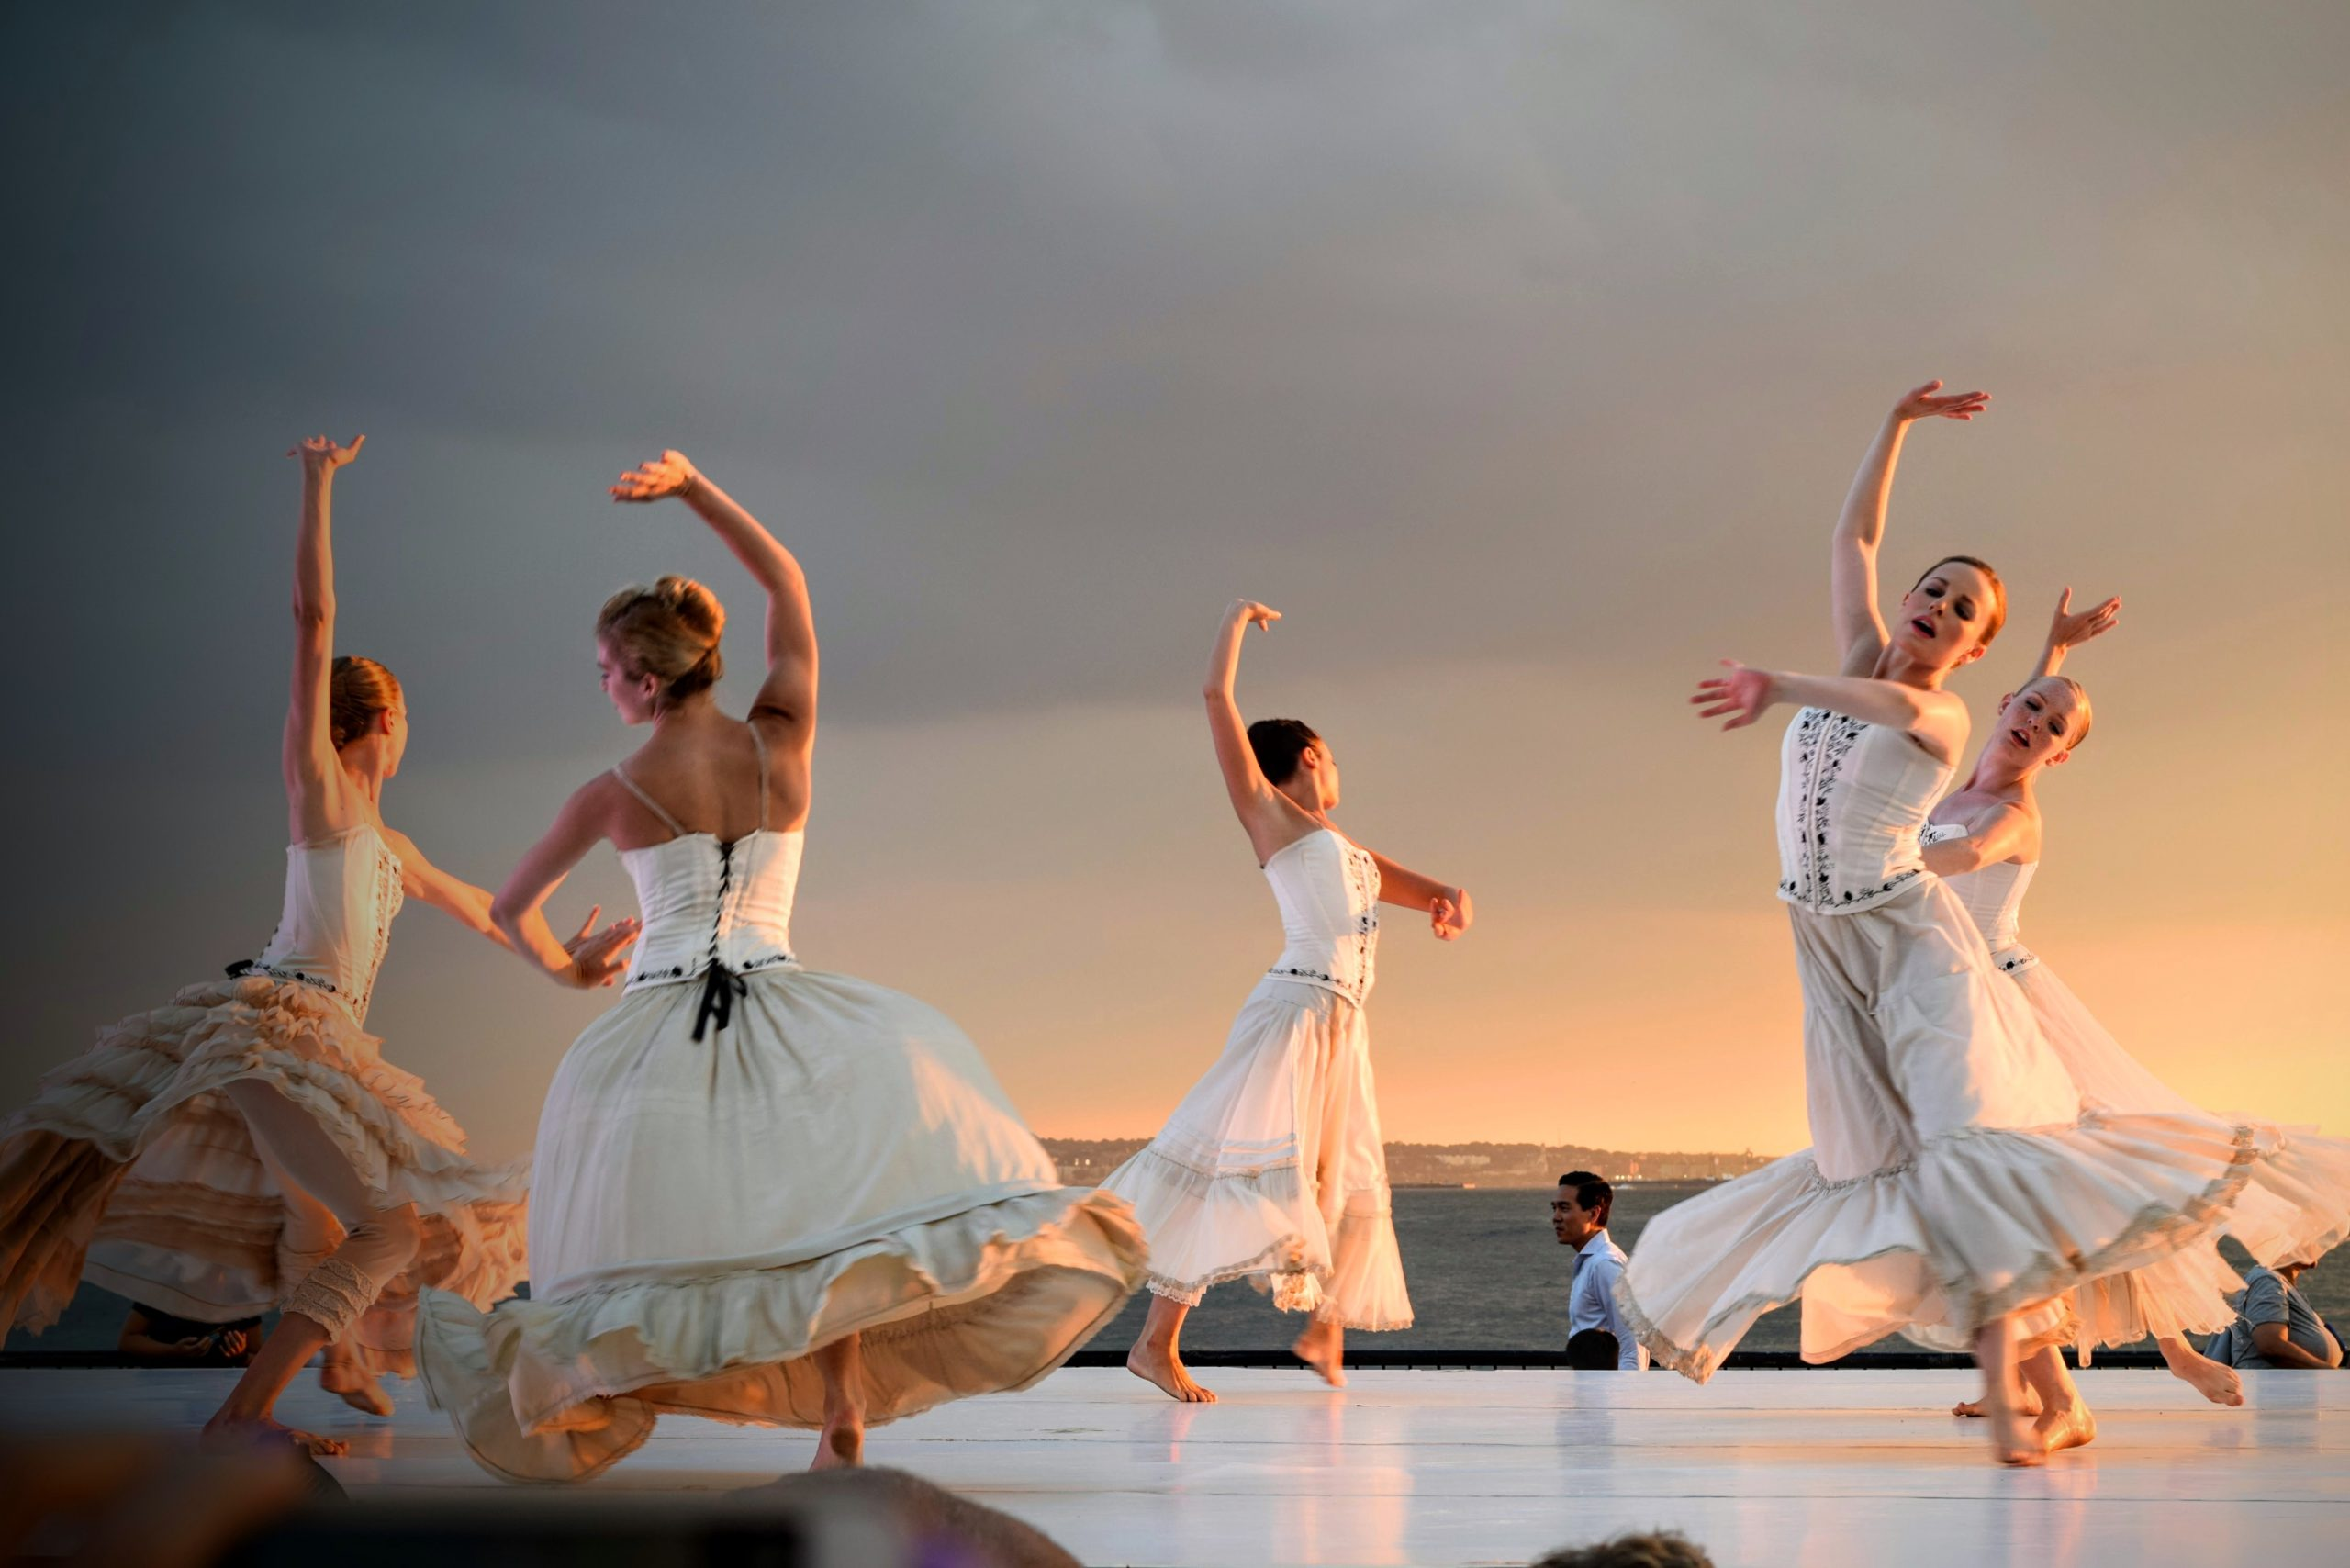 5-women-in-white-dress-dancing-under-gray-sky-during-sunset-175658